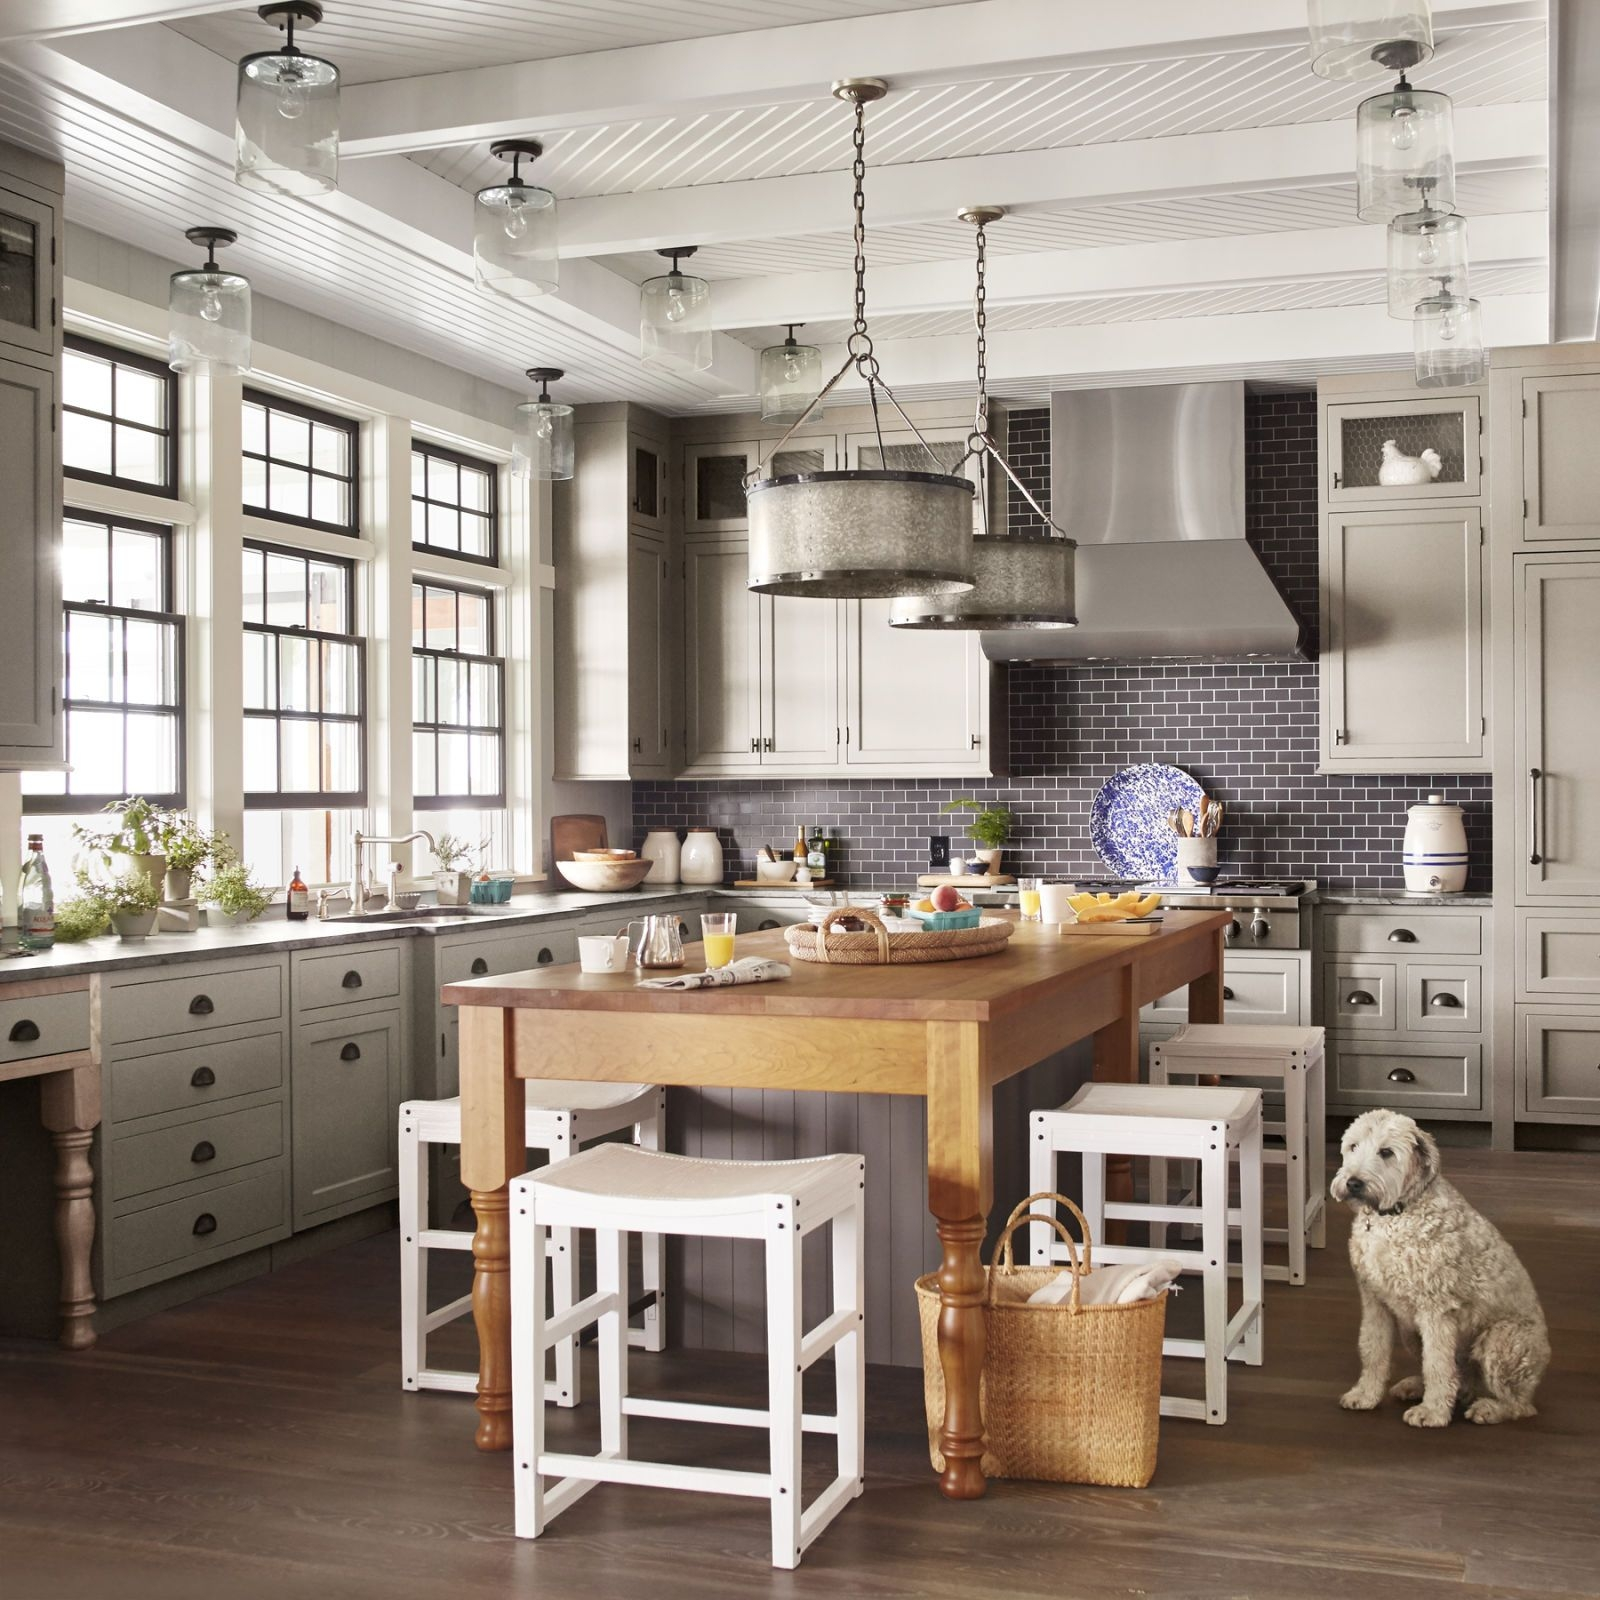 10 essential rules for decorating a lake house kitchen house